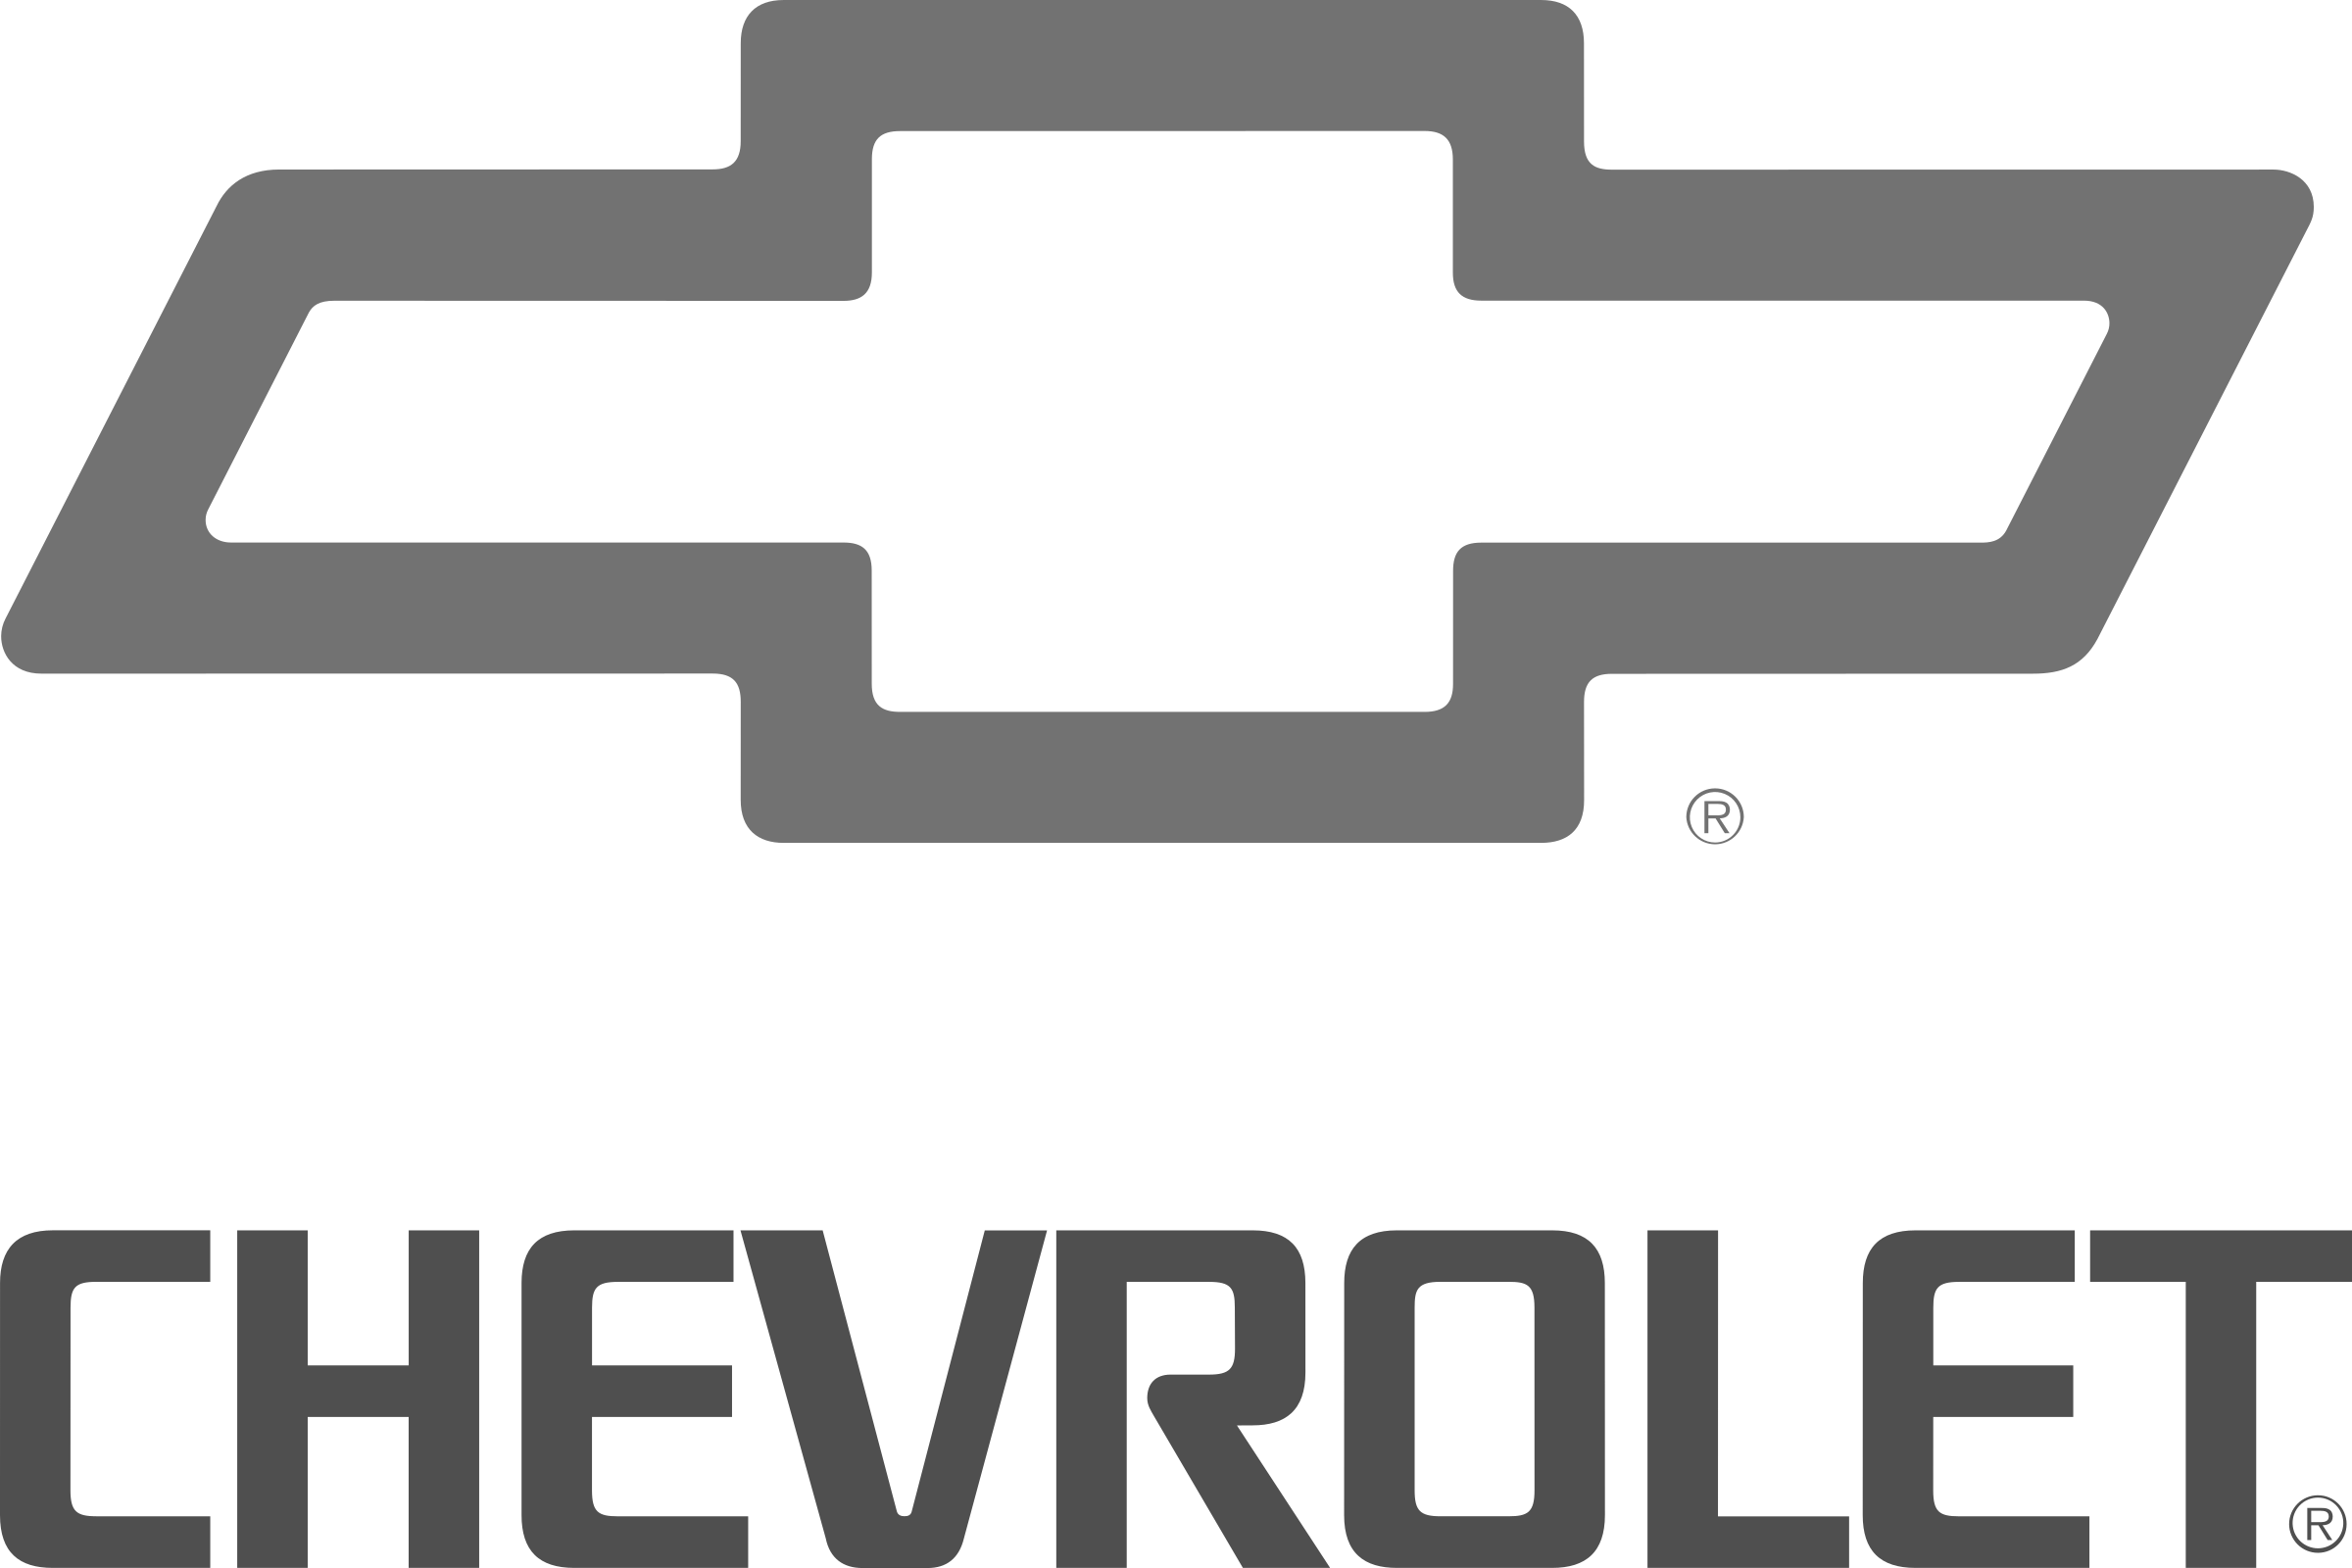 Chevrolet logo png. Transparent svg vector freebie